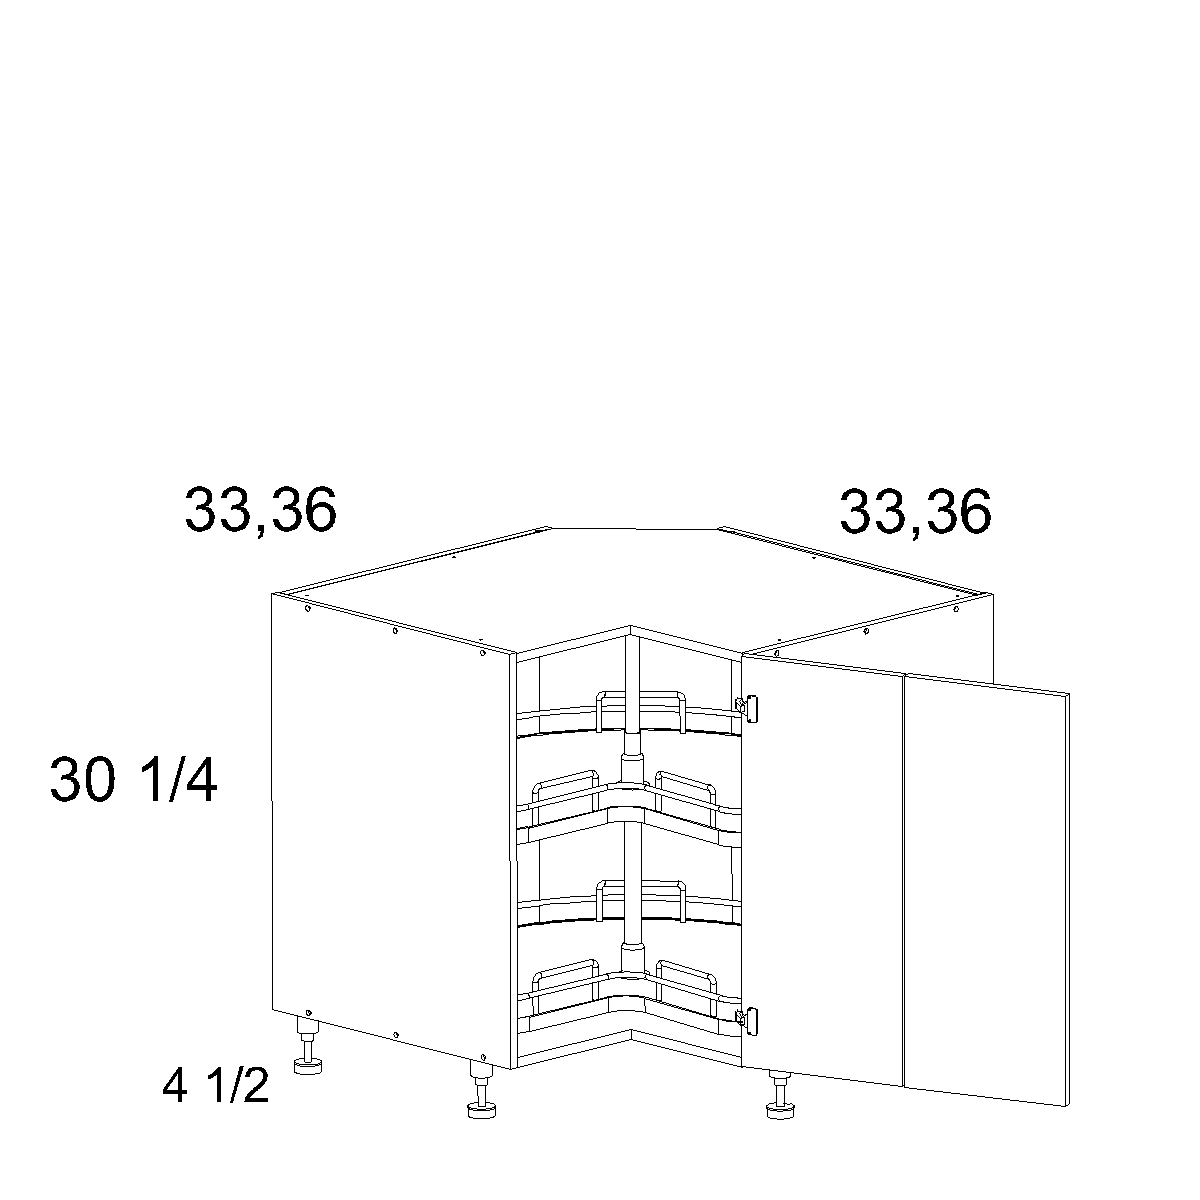 Cabinets, US Cabinet Depot Verona Pure Blank cabinets-us-cabinet-depot-riviera-conch-shell-base-easy-reach-with-lazy-susan-tray-33w-x-30-1-4h-RCS-LSB33